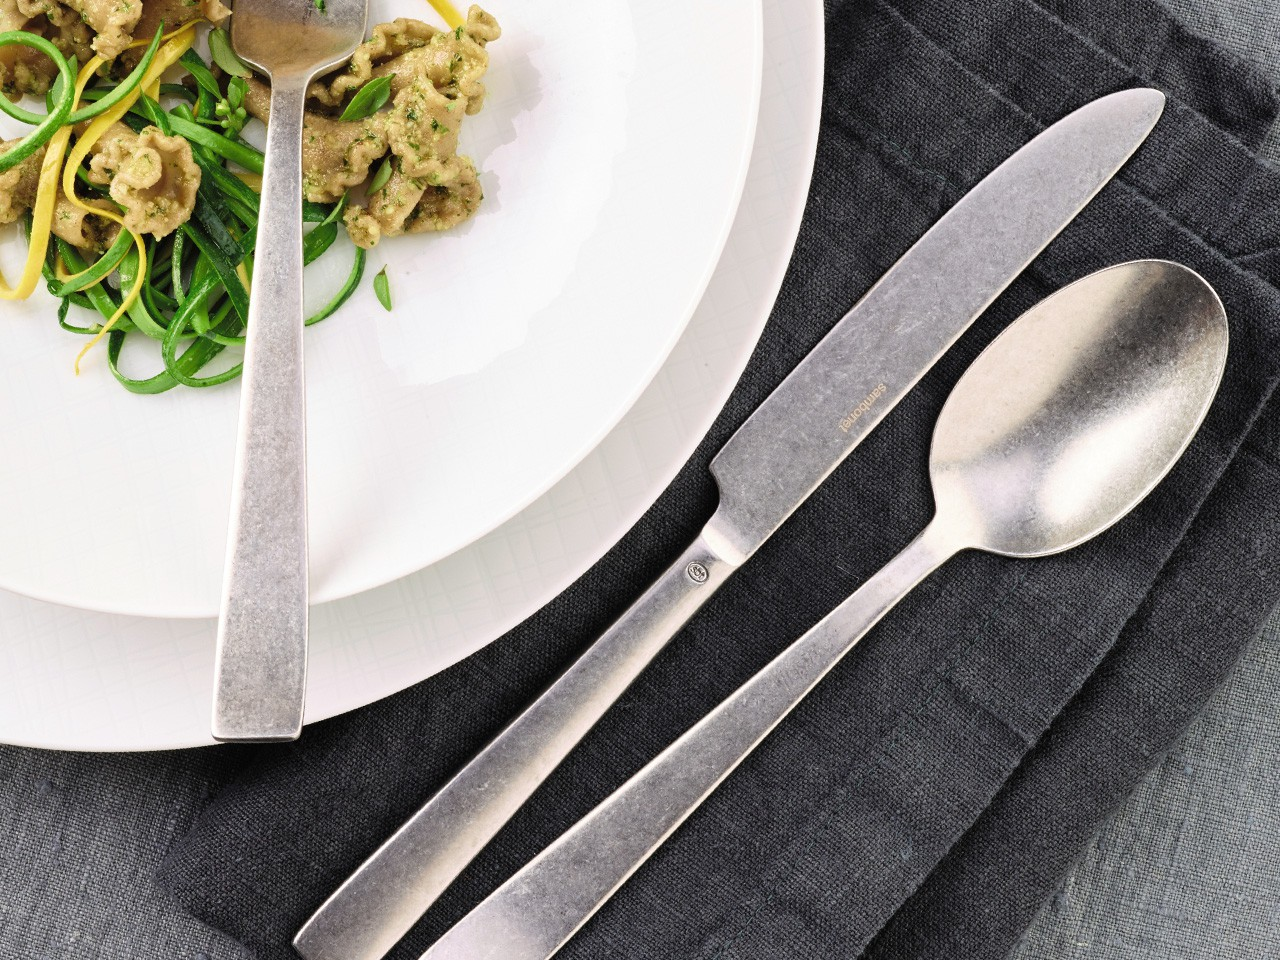 Sambonet Vintage Flat flatware next to Rosenthal Jade dinnerware on gray linen cloth.